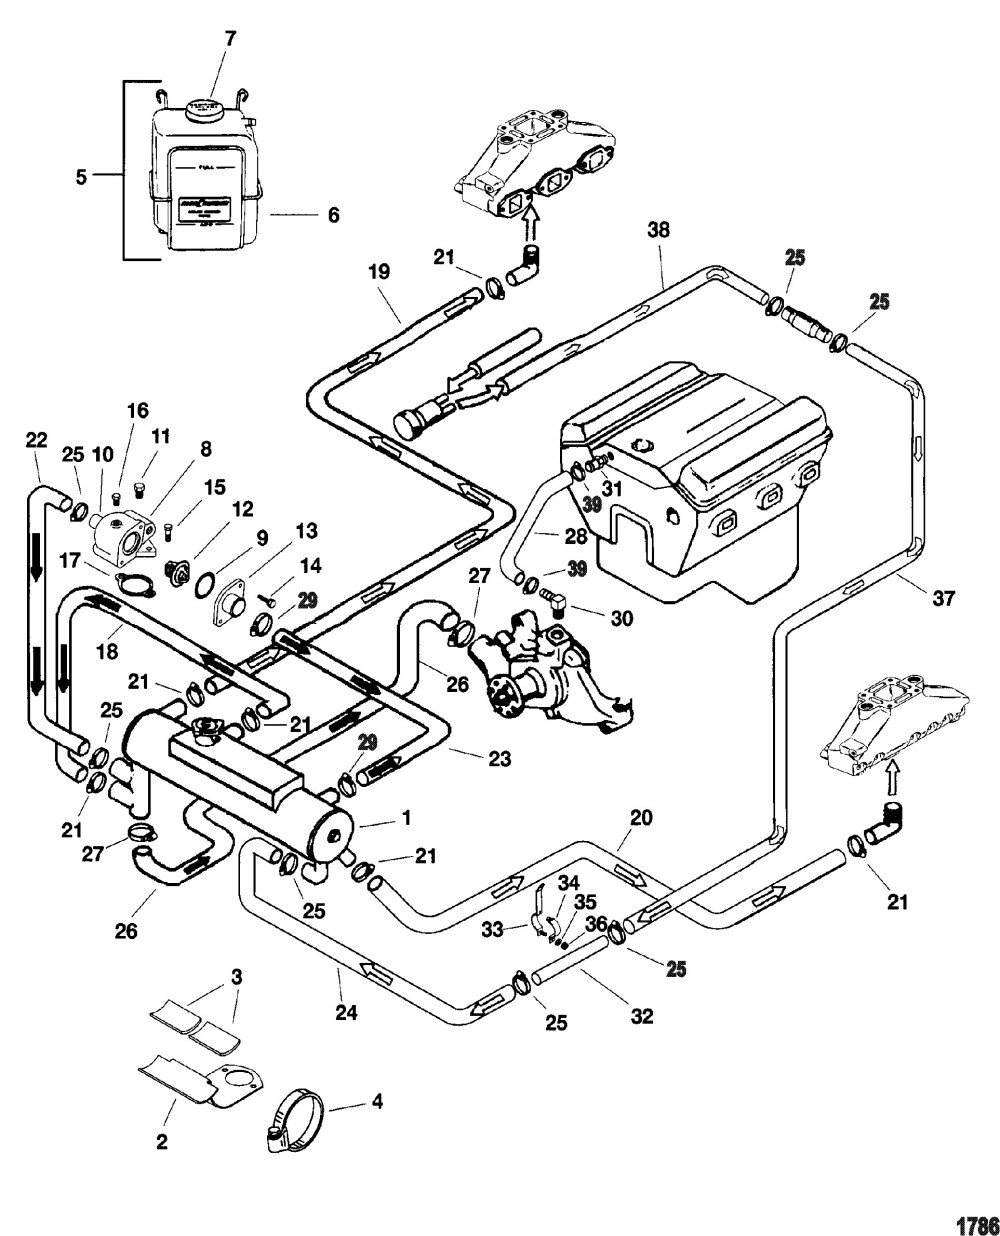 medium resolution of dodge 3 0 engine diagram wiring diagram third level rh 4 14 20 jacobwinterstein com chrysler 3 5 engine diagram chrysler concorde 3 2 engine diagram